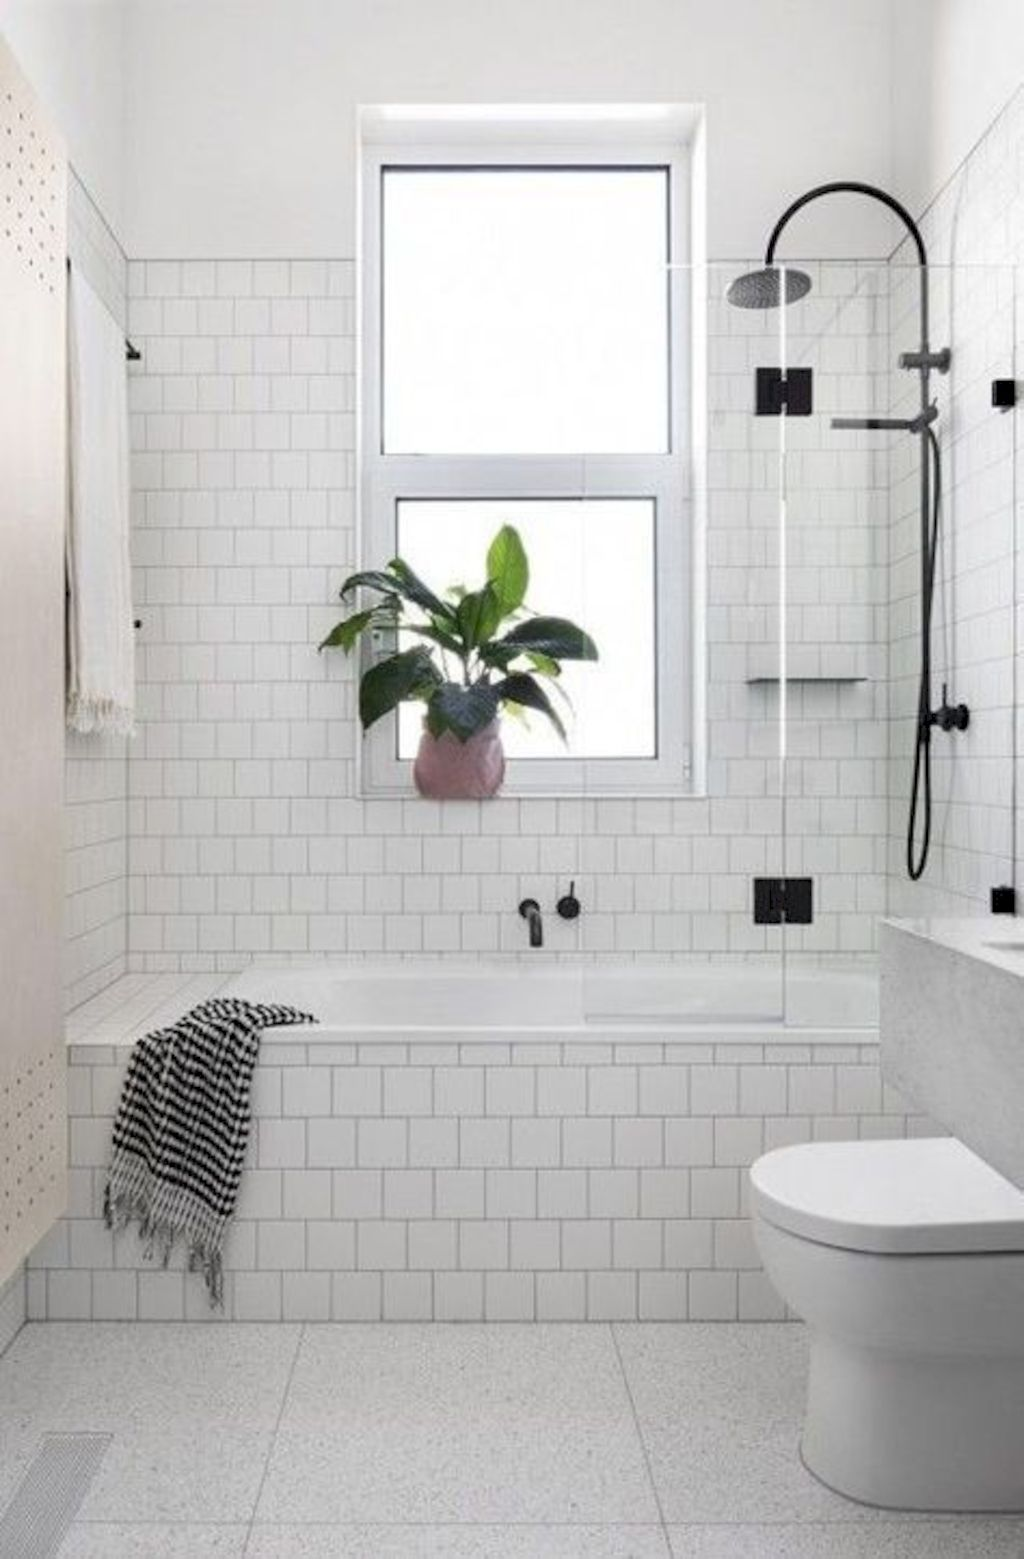 Creative bathroom updates mixing modern trend with simple 60s terrazzo style giving a brilliant contemporary balance Image 18